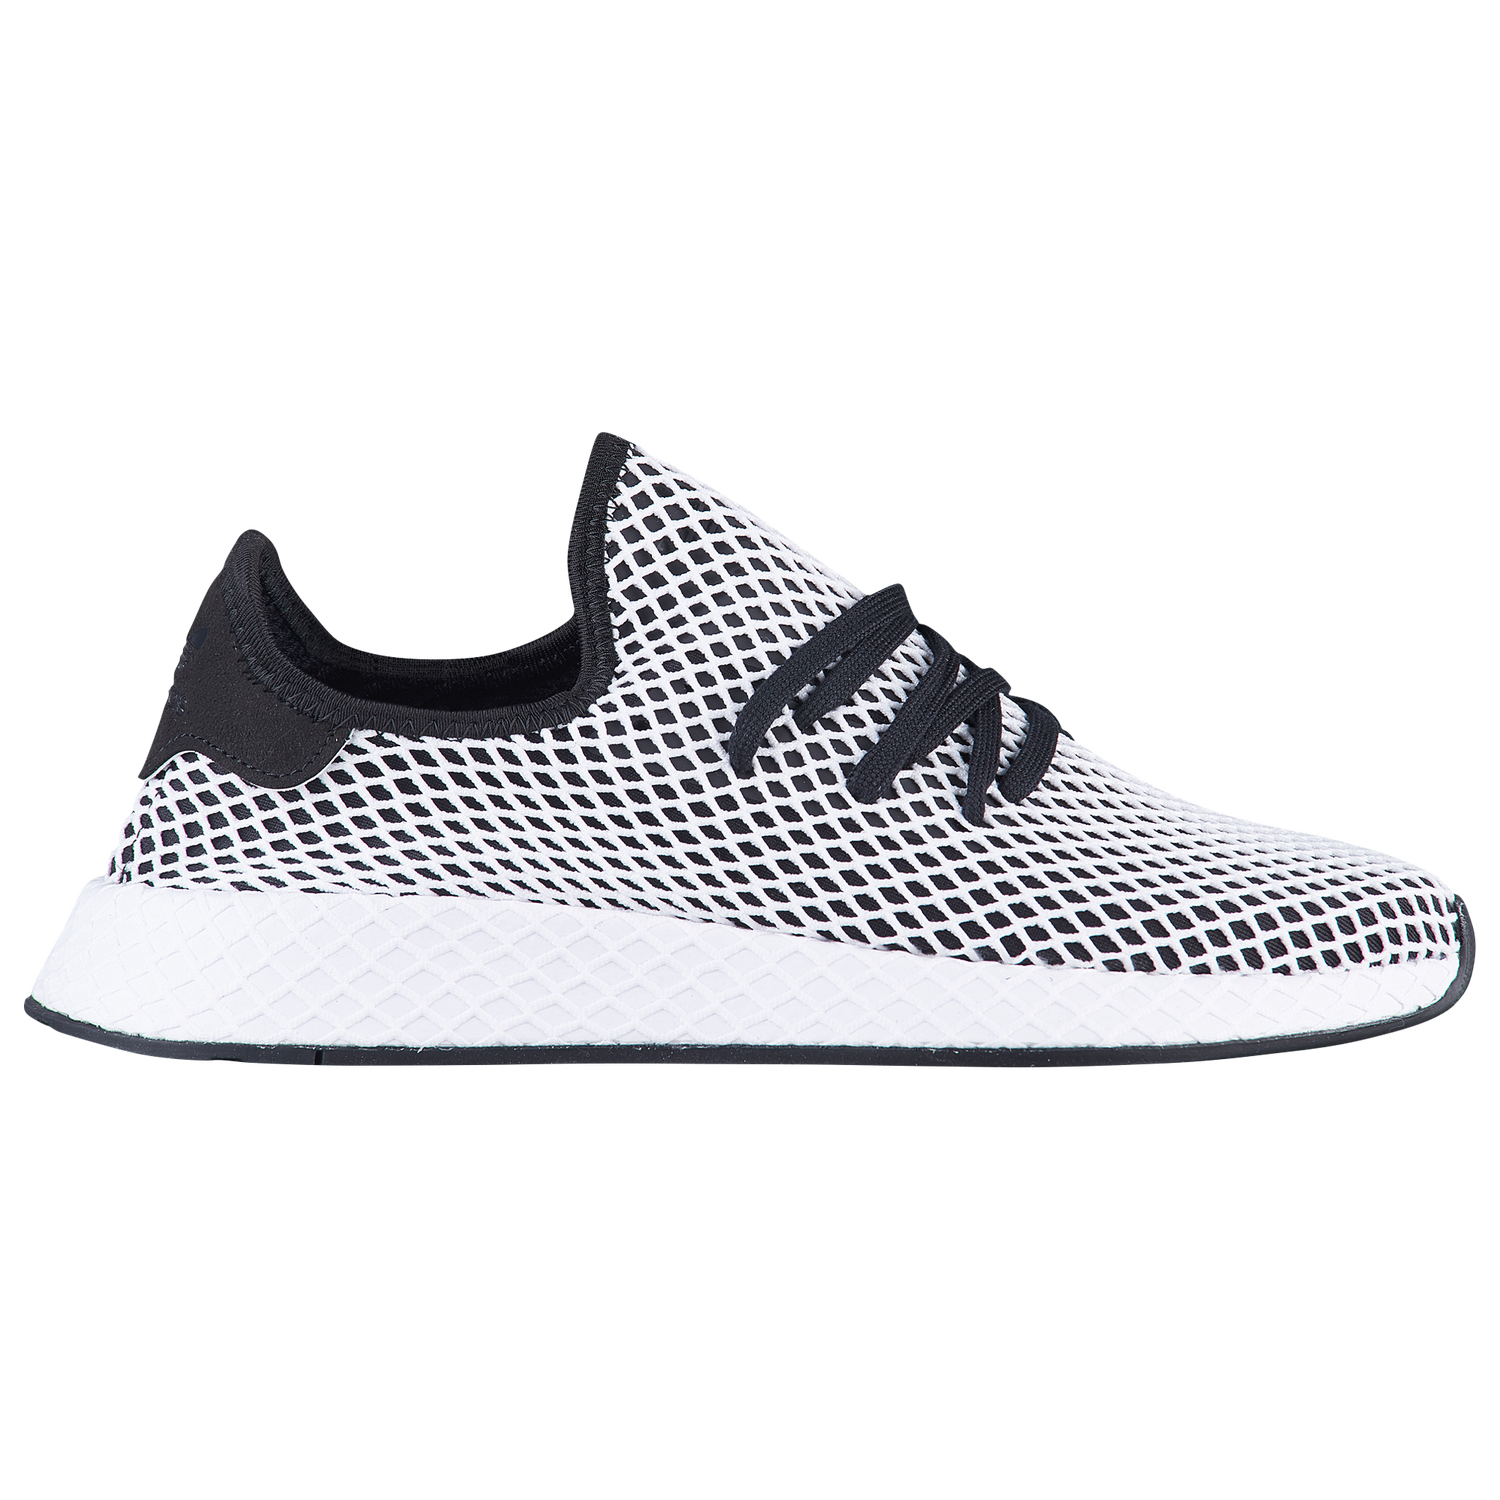 Prices Online Black and white Deerupt Runner sneaker adidas Originals Buy Cheap Visa Payment Official Cheap Online Low Shipping Fee Sale Online 3aiHupQjji